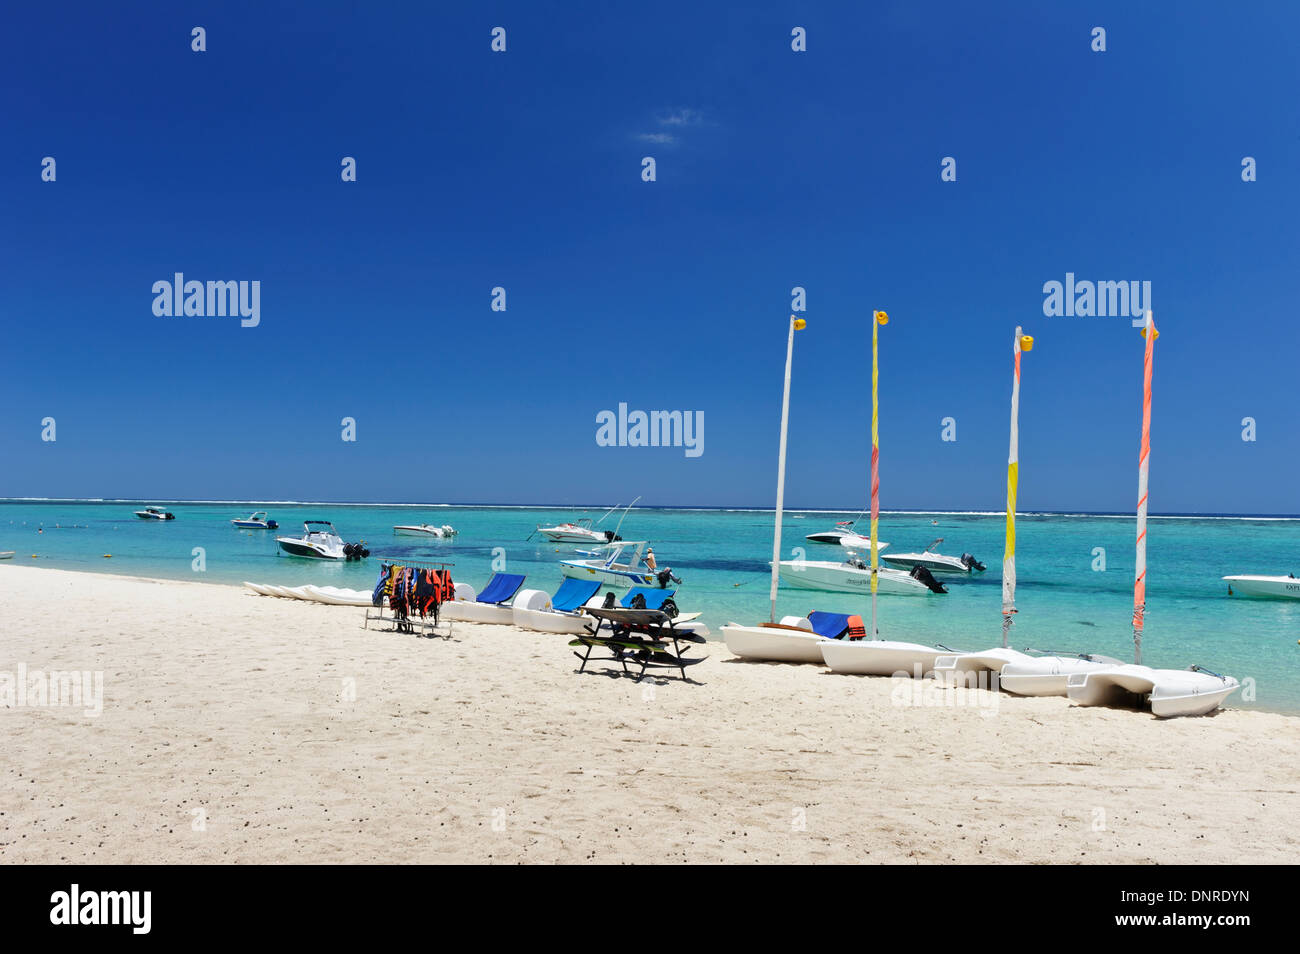 Water sport equipment on sandy beach and turquoise sea of Mauritius. - Stock Image